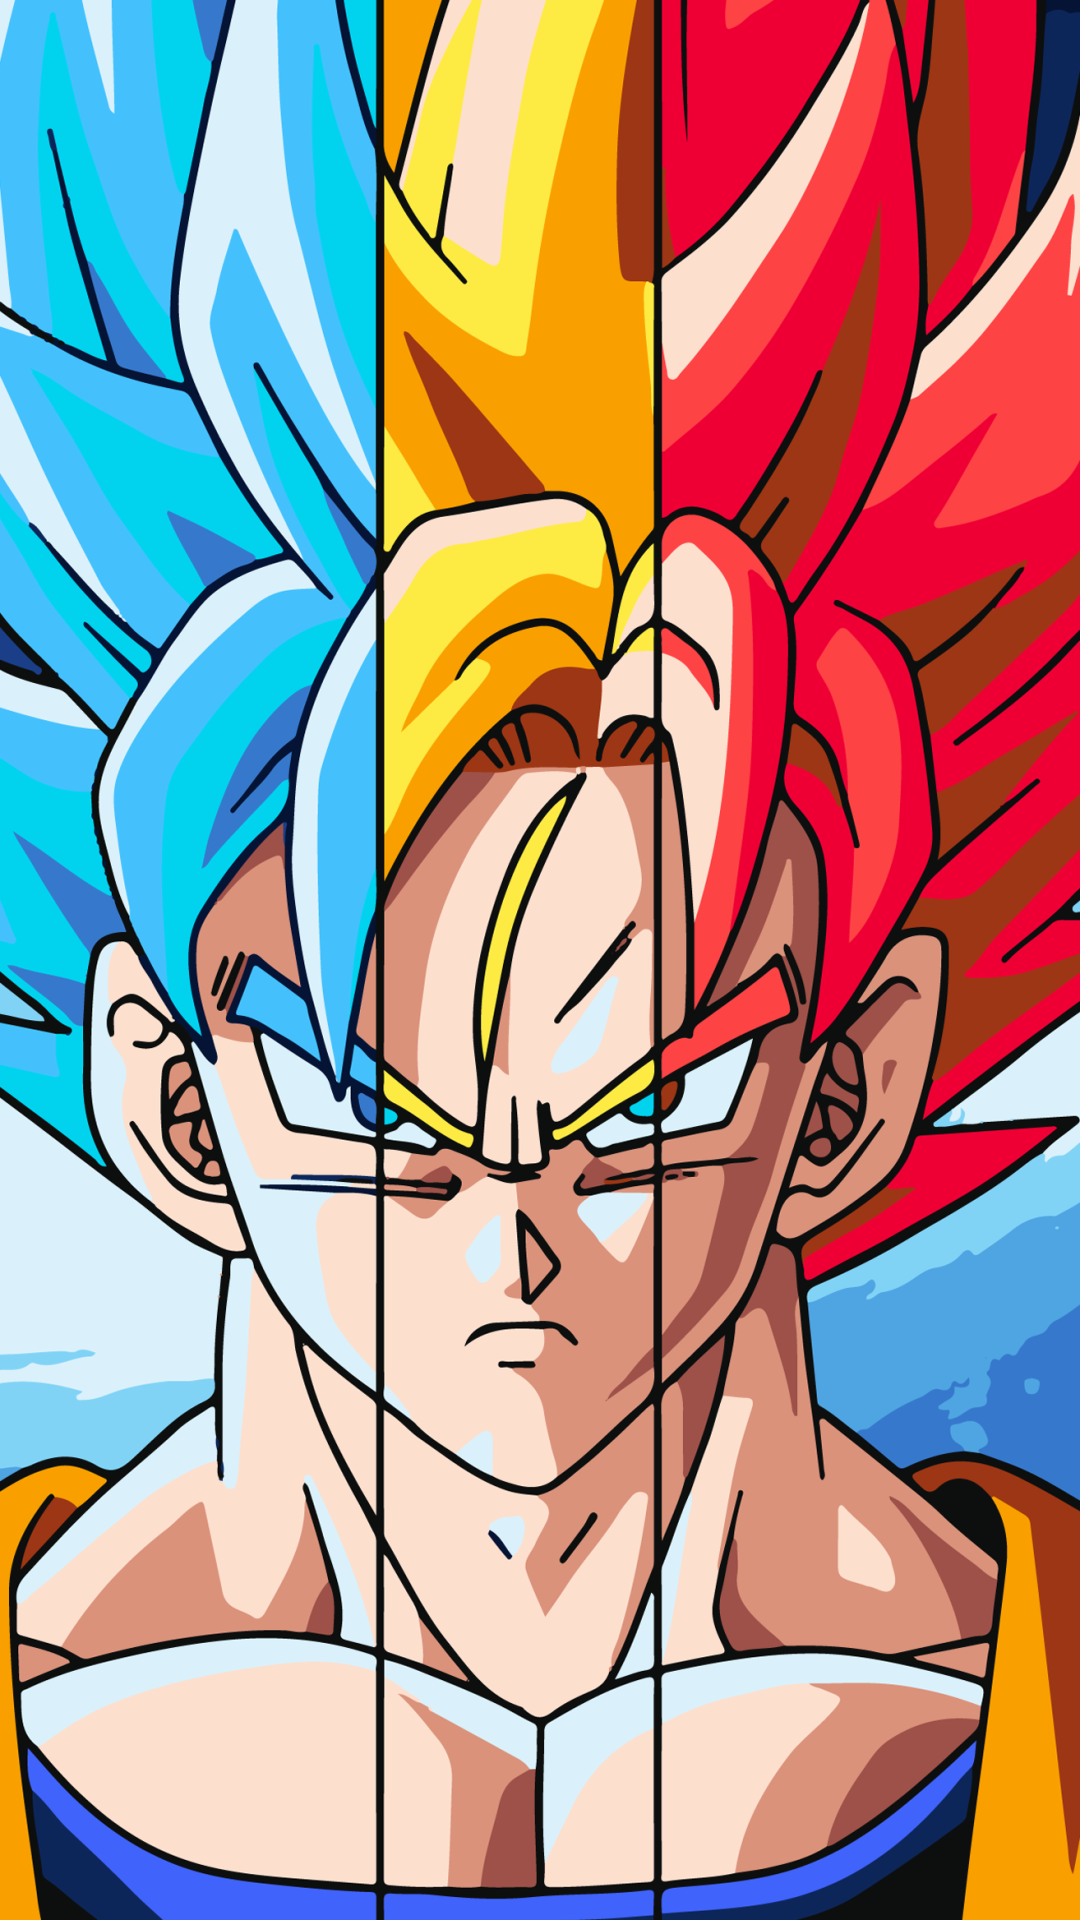 448 Dragon Ball Super Apple Iphone 7 Plus 1080x1920 Wallpapers